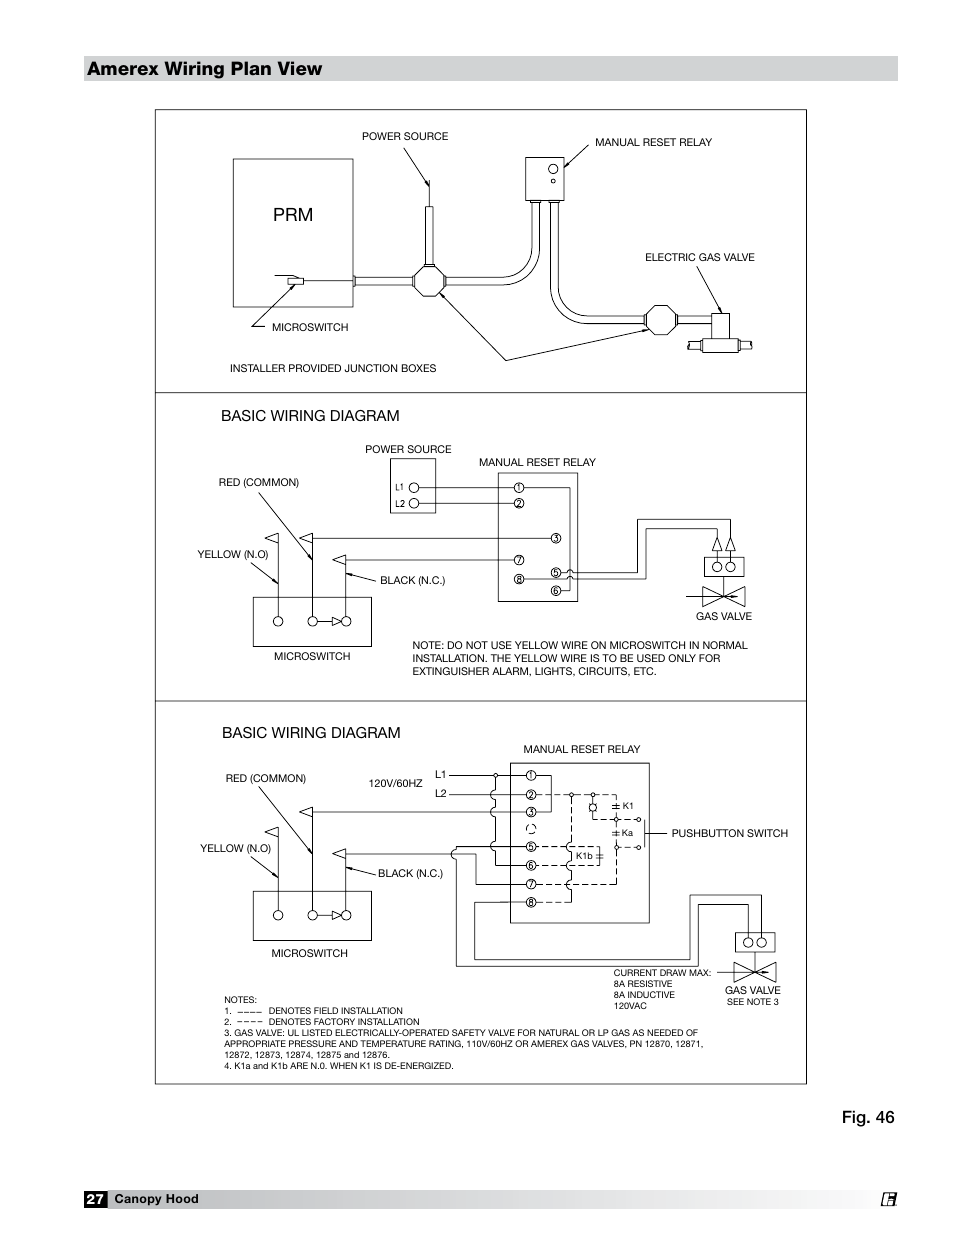 c plan wiring diagram c image wiring diagram amerex wiring diagram amerex wiring diagrams on c plan wiring diagram